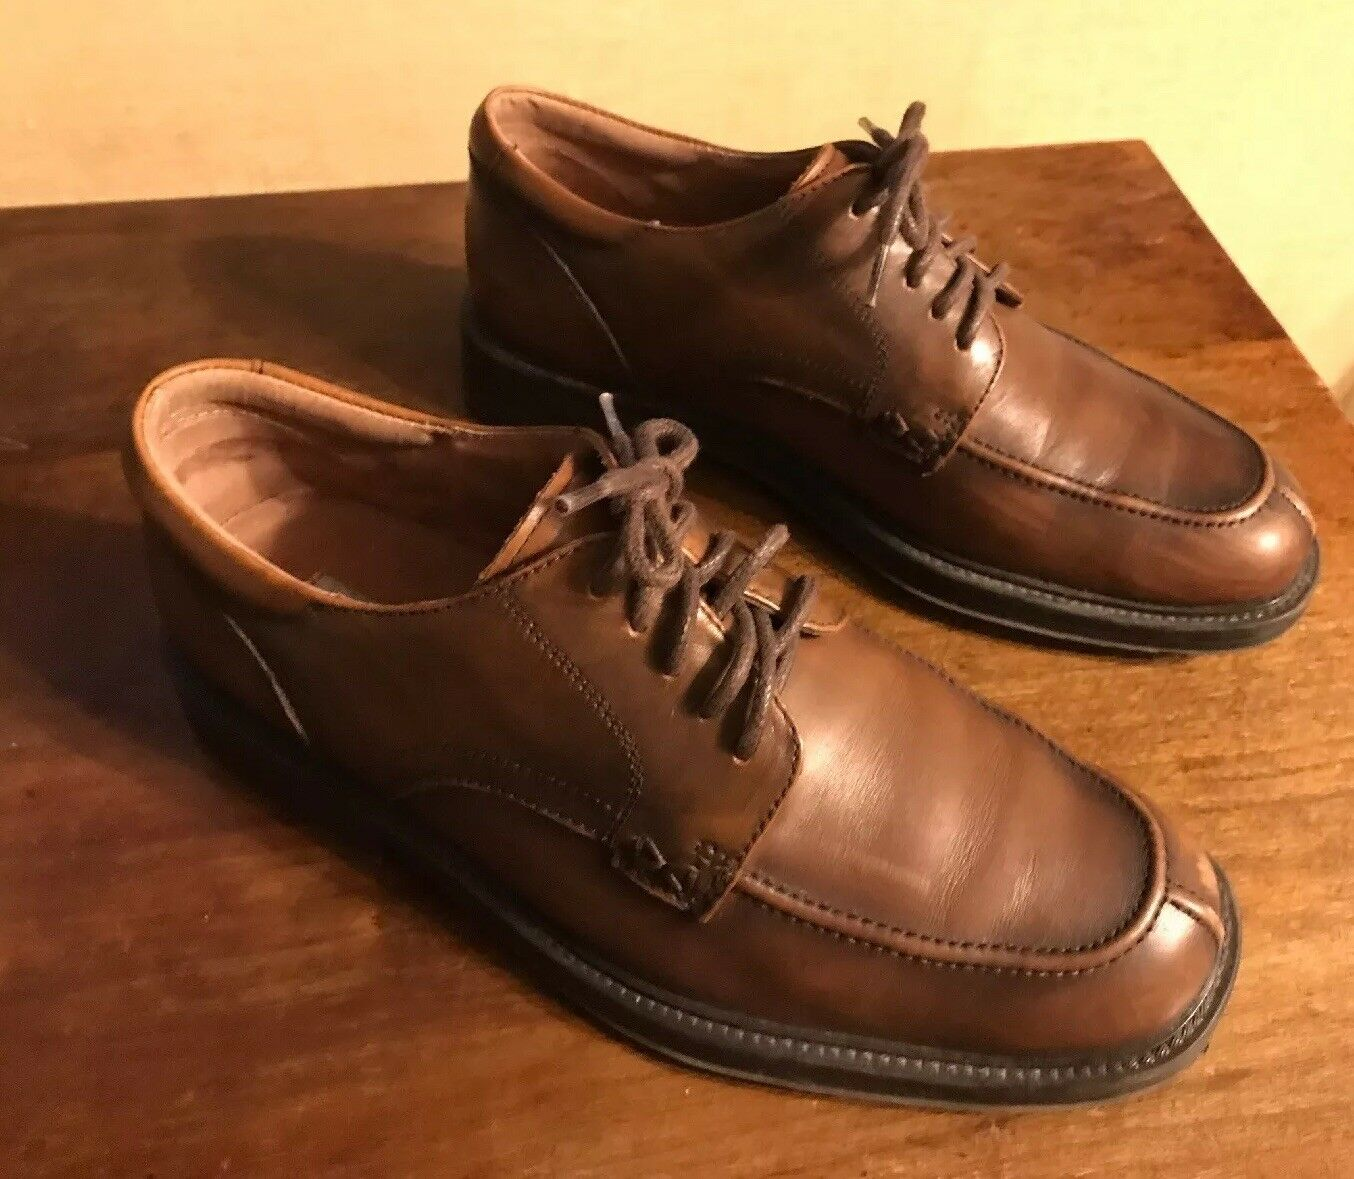 MENS DRESS BOSTONIAN 28676 BROWN LEATHER UPPER OXFORD DRESS MENS SHOES SIZE 7 M 9eee99